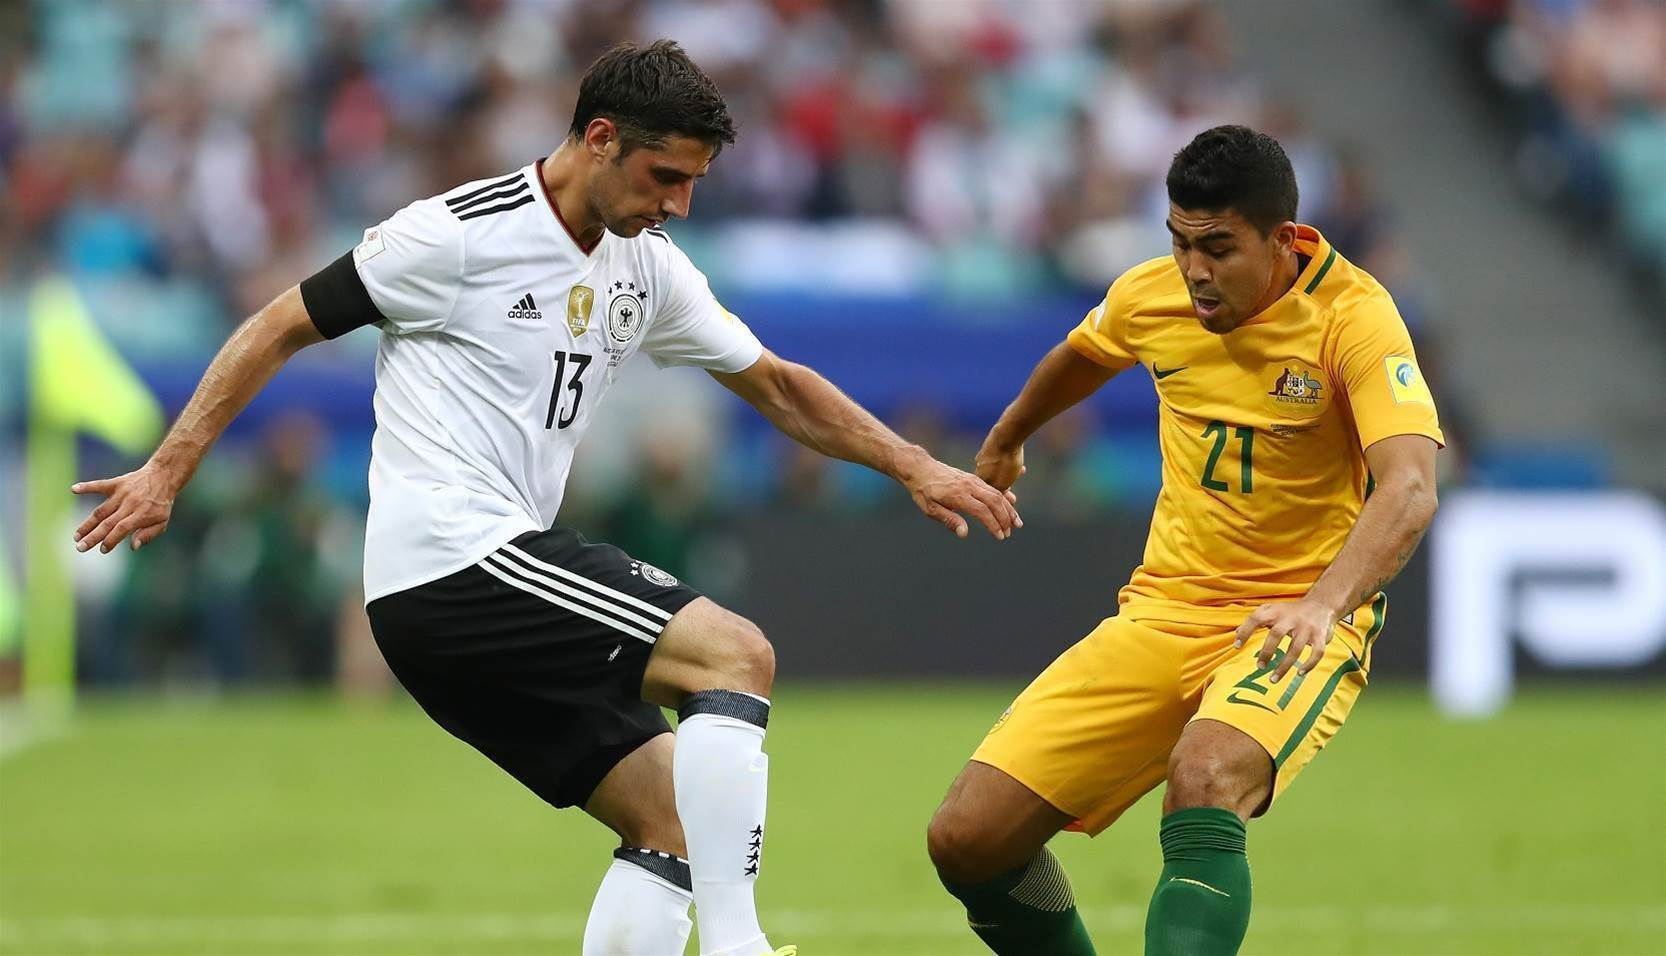 Australia-Germany player ratings - who starred, who struggled?